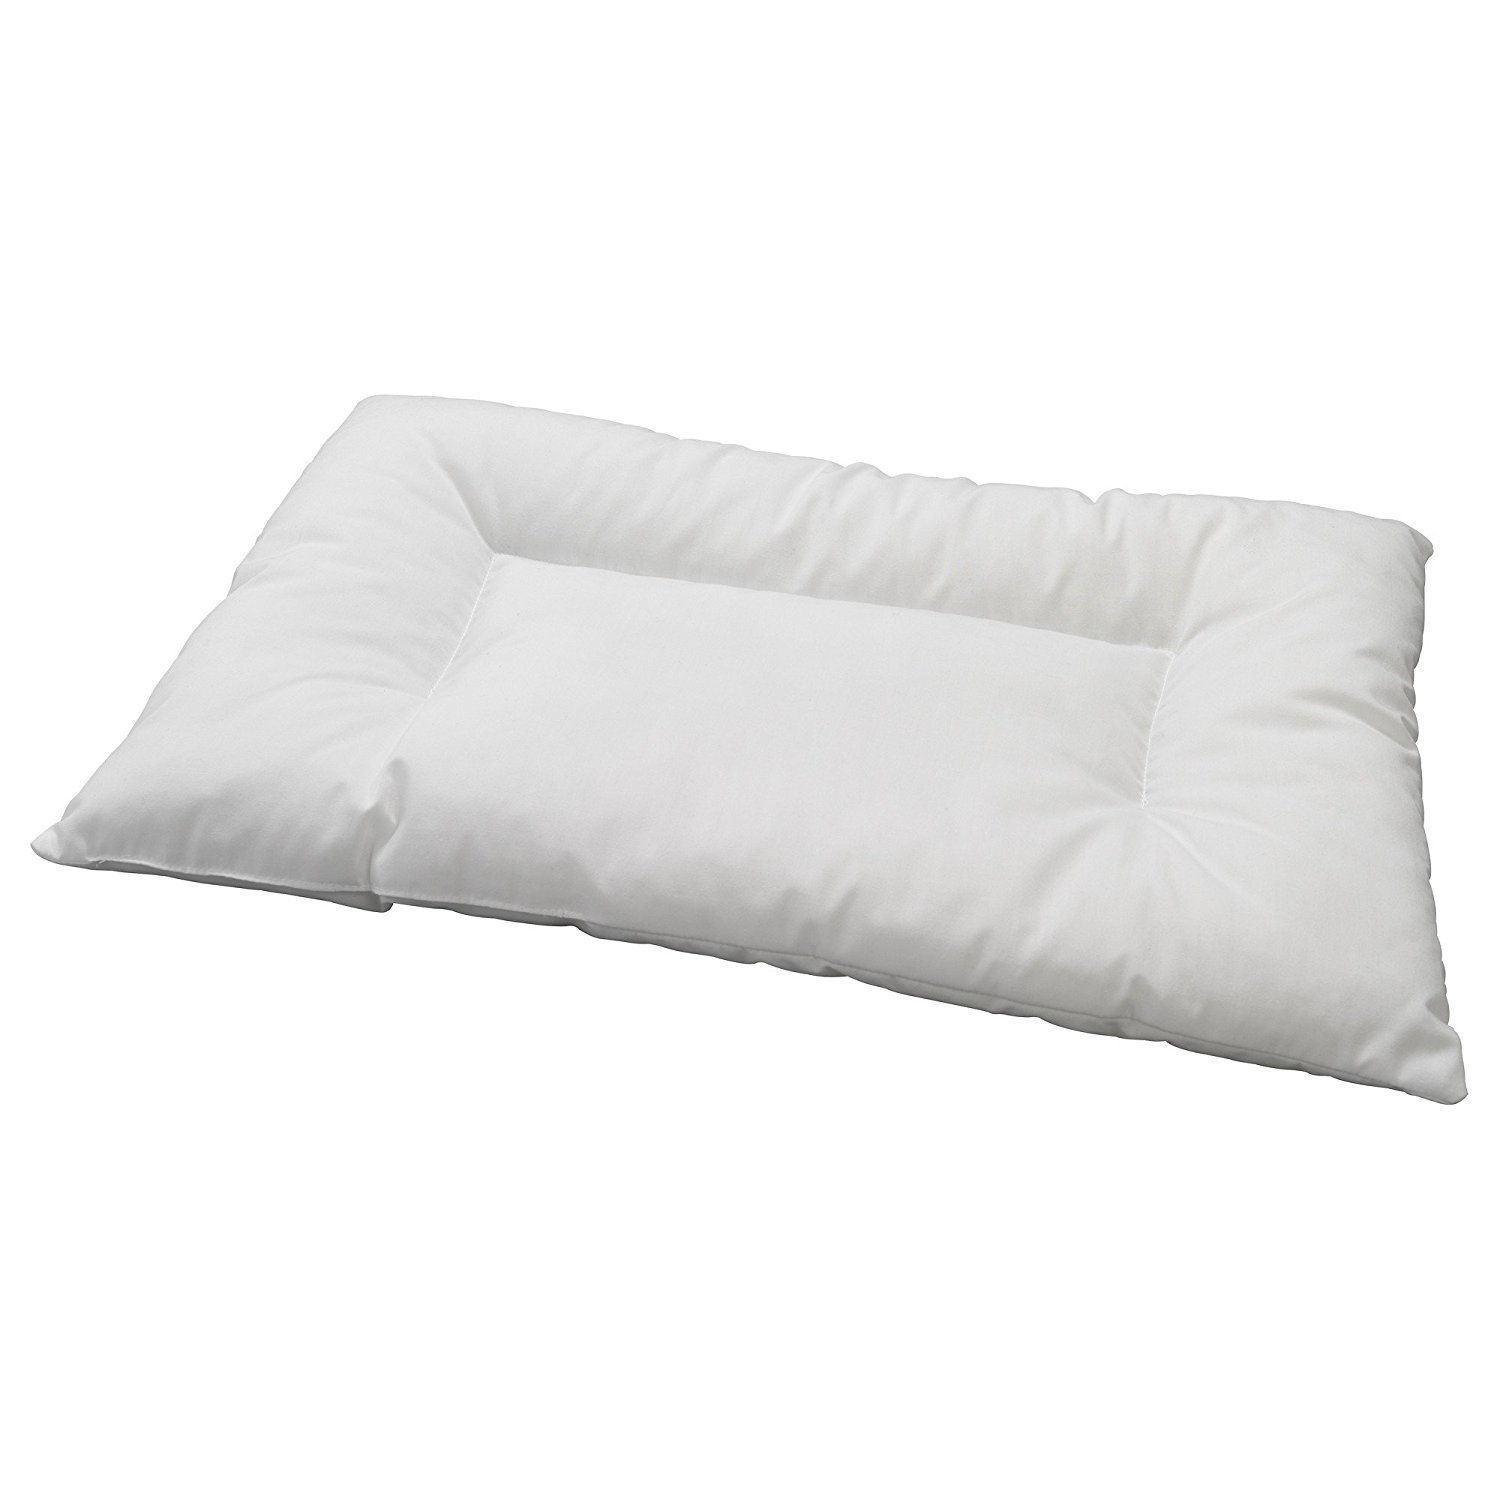 IKEA LEN Baby/Child's Pillow for Cot or Bed, White BabyCenter 800.285.09